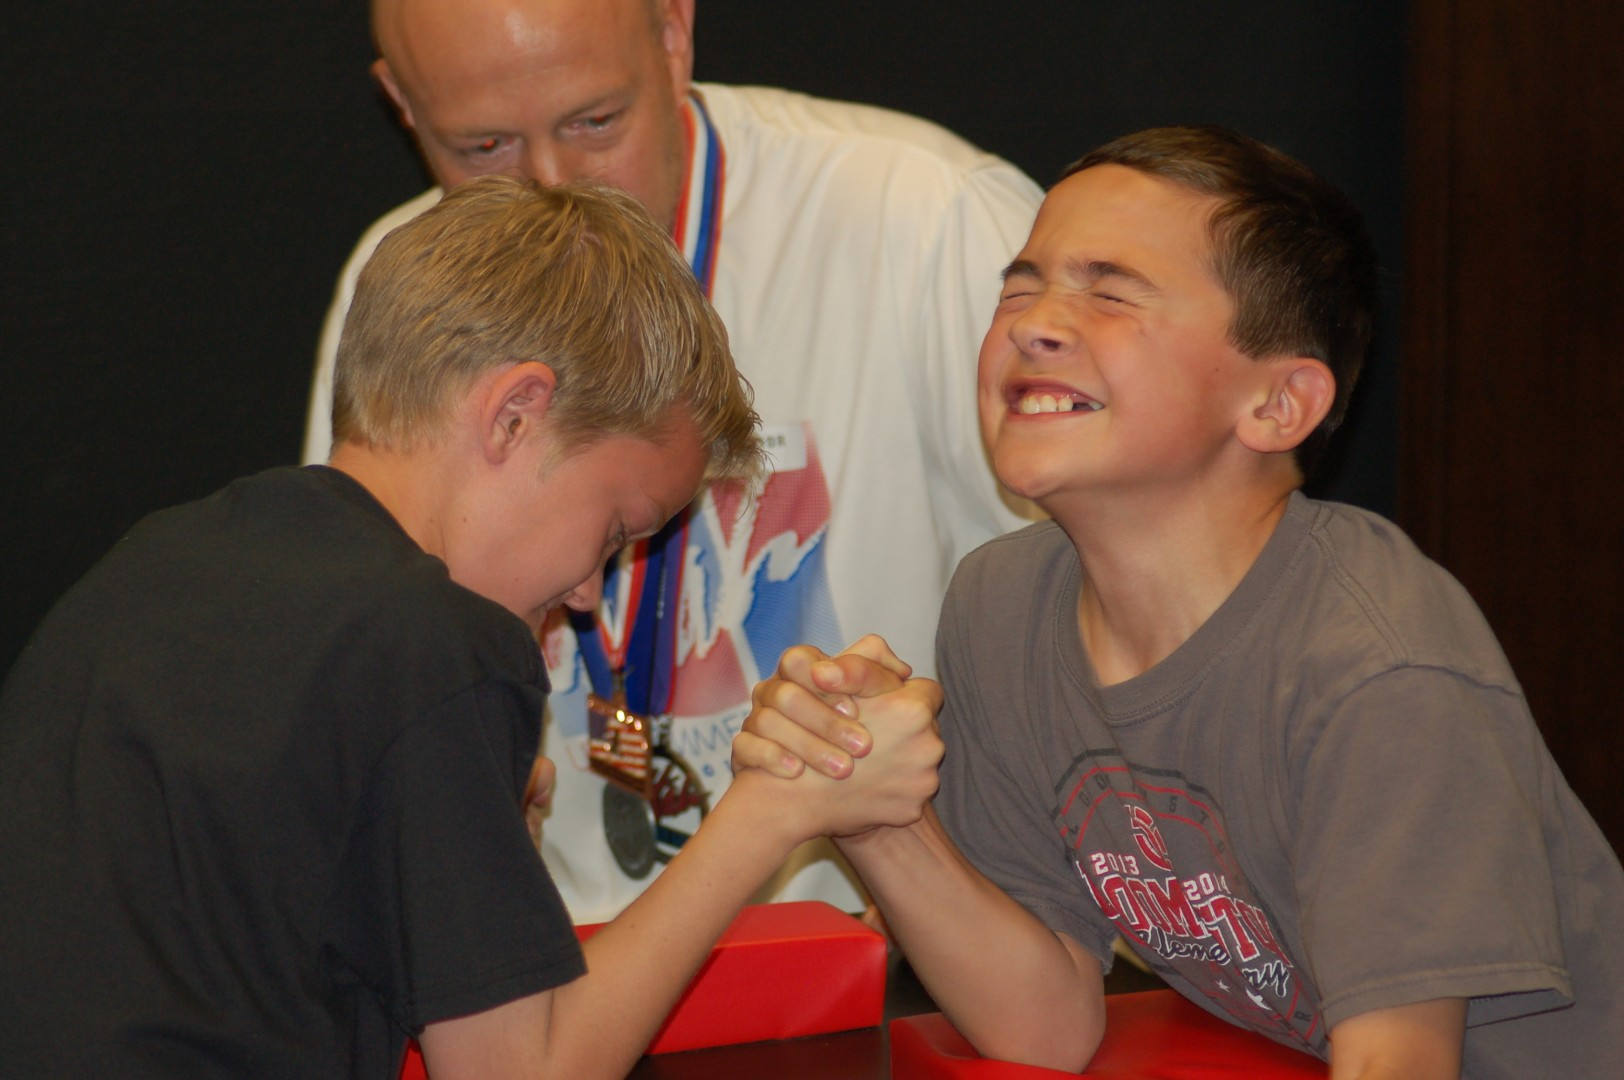 L-R Gage Baresco, 11, Jeff Kirby, and Ian Burge, 11. Baresco and Burge arm wrestle while Kirby referee's at an assembly held at Bloomington Elementary to promote arm wrestling as a sport in the Utah Summer Games, St. George, Utah, April 4, 2014 | Photo by Hollie Reina, St. George News